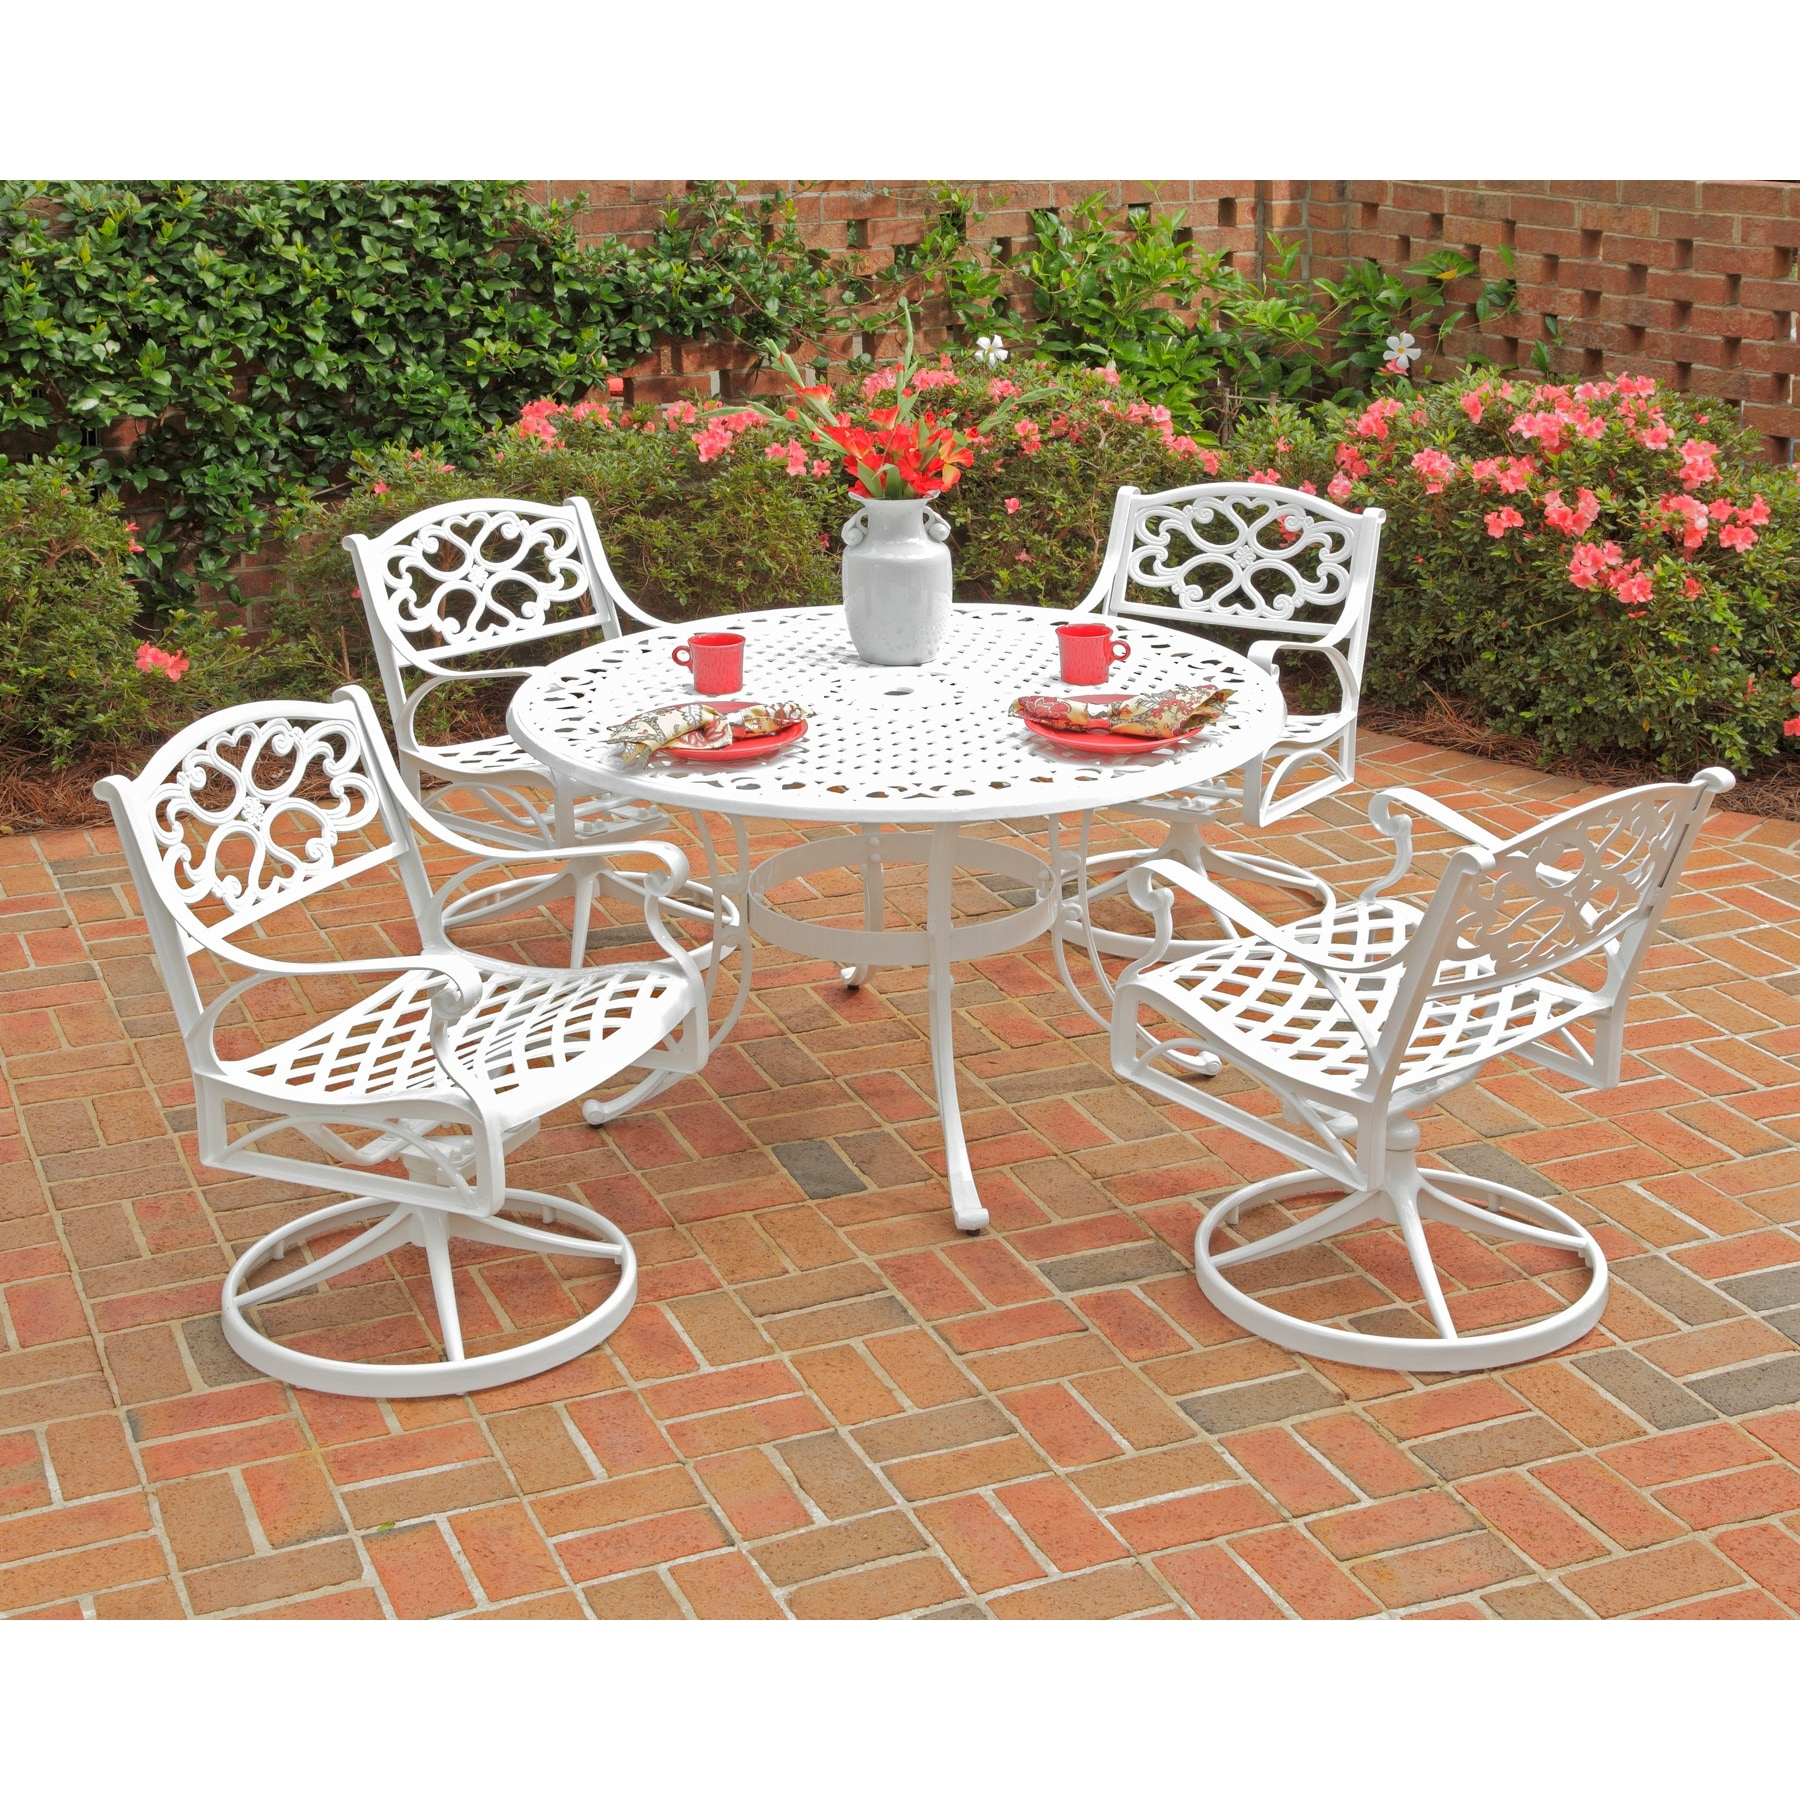 Cast Aluminum and Water Shedding Design UV-Resistant Coating Home Styles Biscayne White Oval Outdoor Dining Table with Hand-Applied White Antique Finish Adjustable Nylon Glides